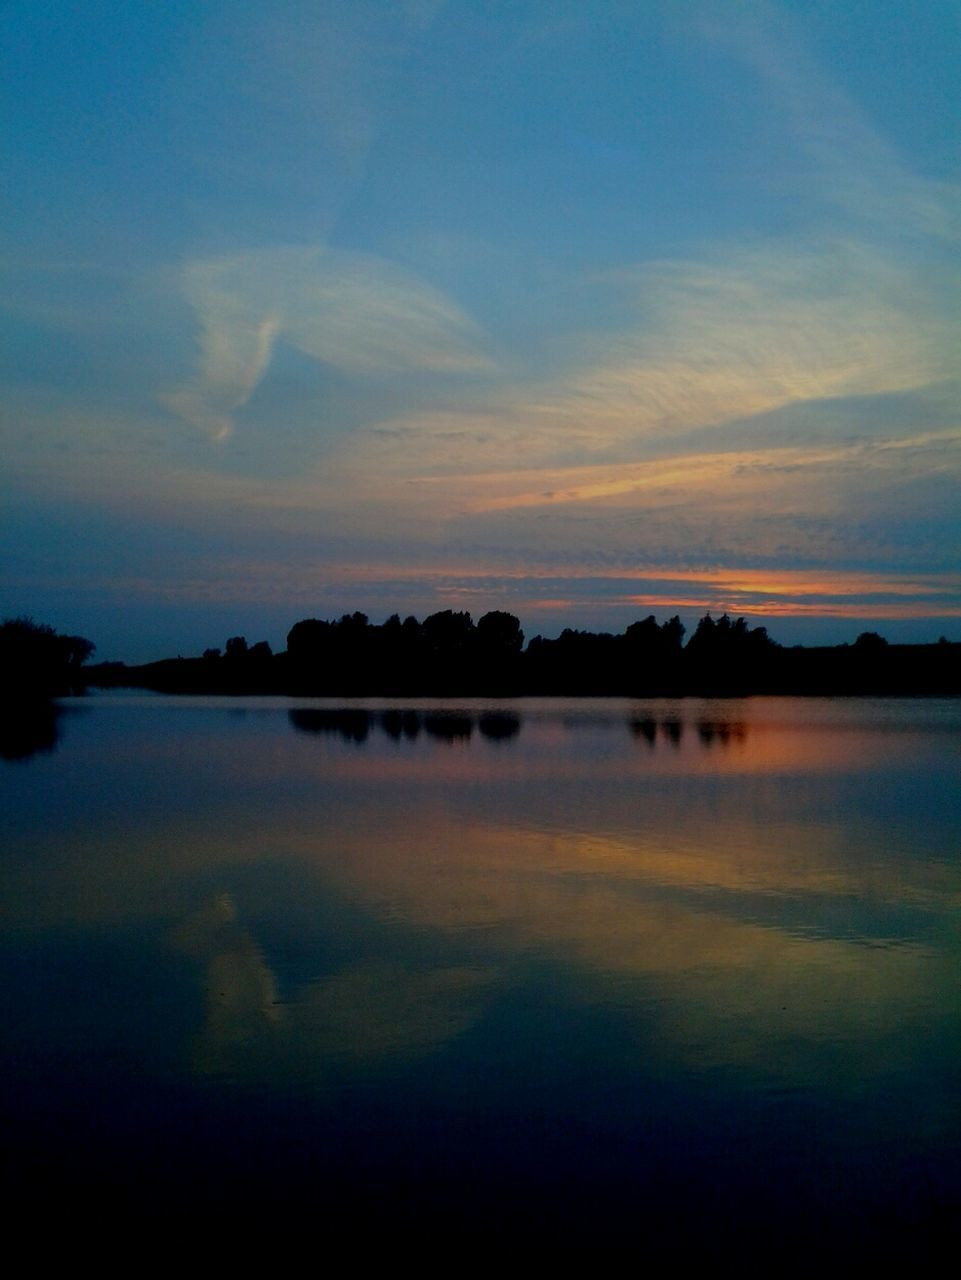 reflection, water, sky, tranquility, lake, nature, sunset, beauty in nature, scenics, tranquil scene, silhouette, outdoors, no people, standing water, cloud - sky, day